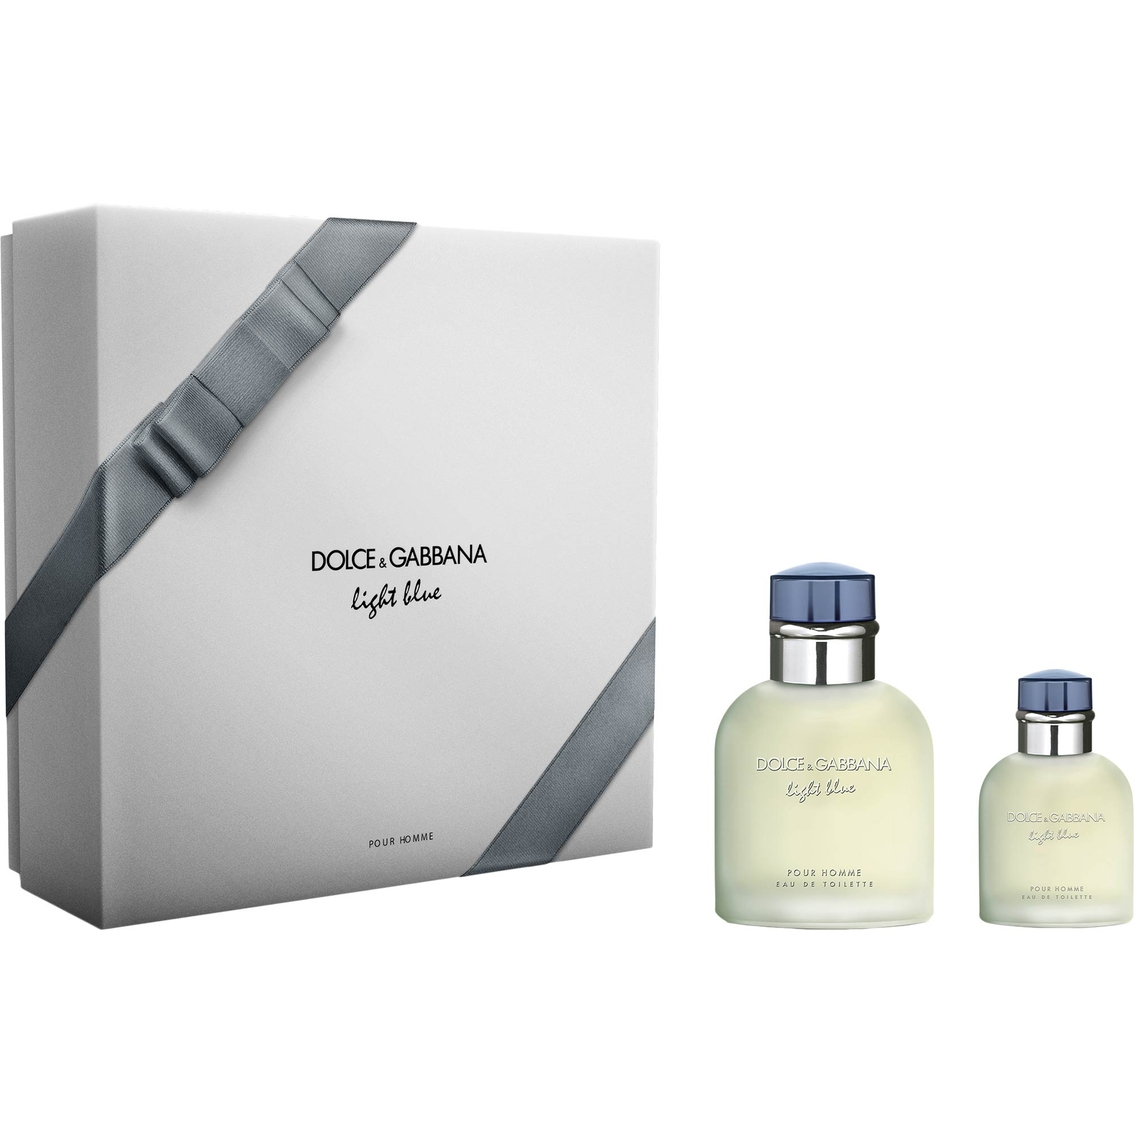 Dolce & Gabbana Light Blue Pour Homme Fragrance 2 Pc. Set